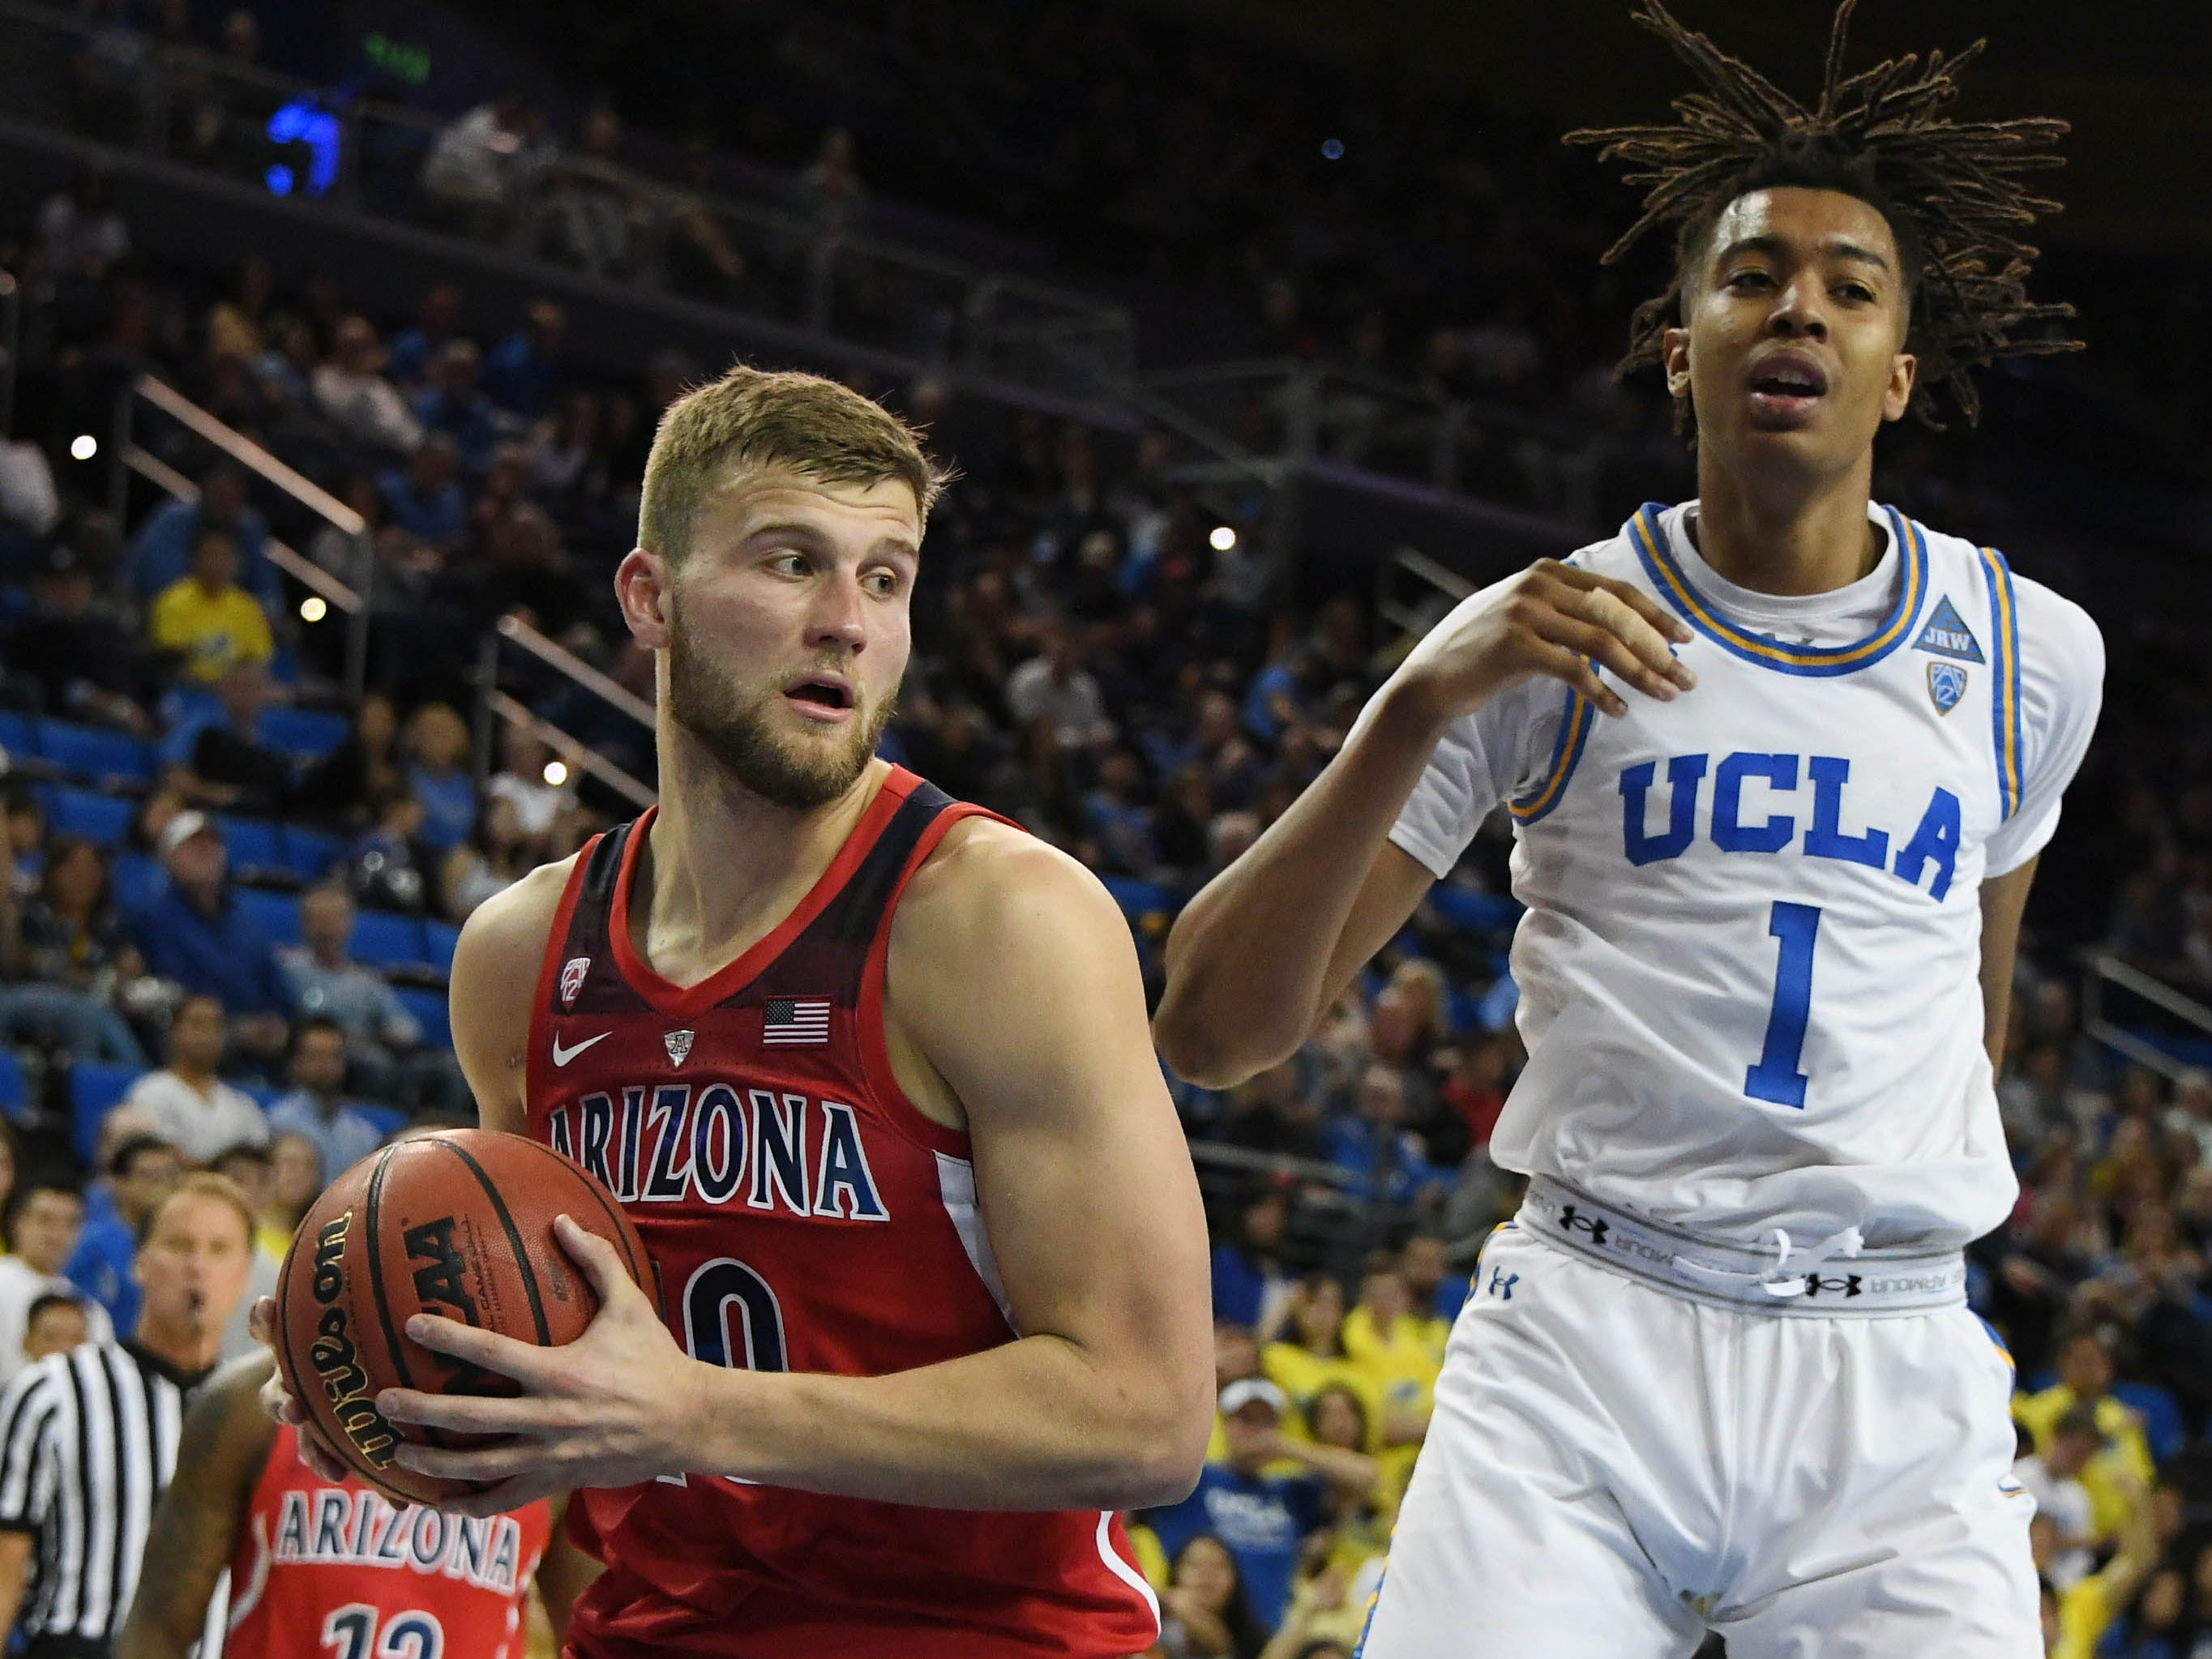 Jan 26, 2019; Los Angeles, CA, USA; Arizona Wildcats forward Ryan Luther (10) rebounds the ball in front of UCLA Bruins center Moses Brown (1) in the second half at Pauley Pavilion.